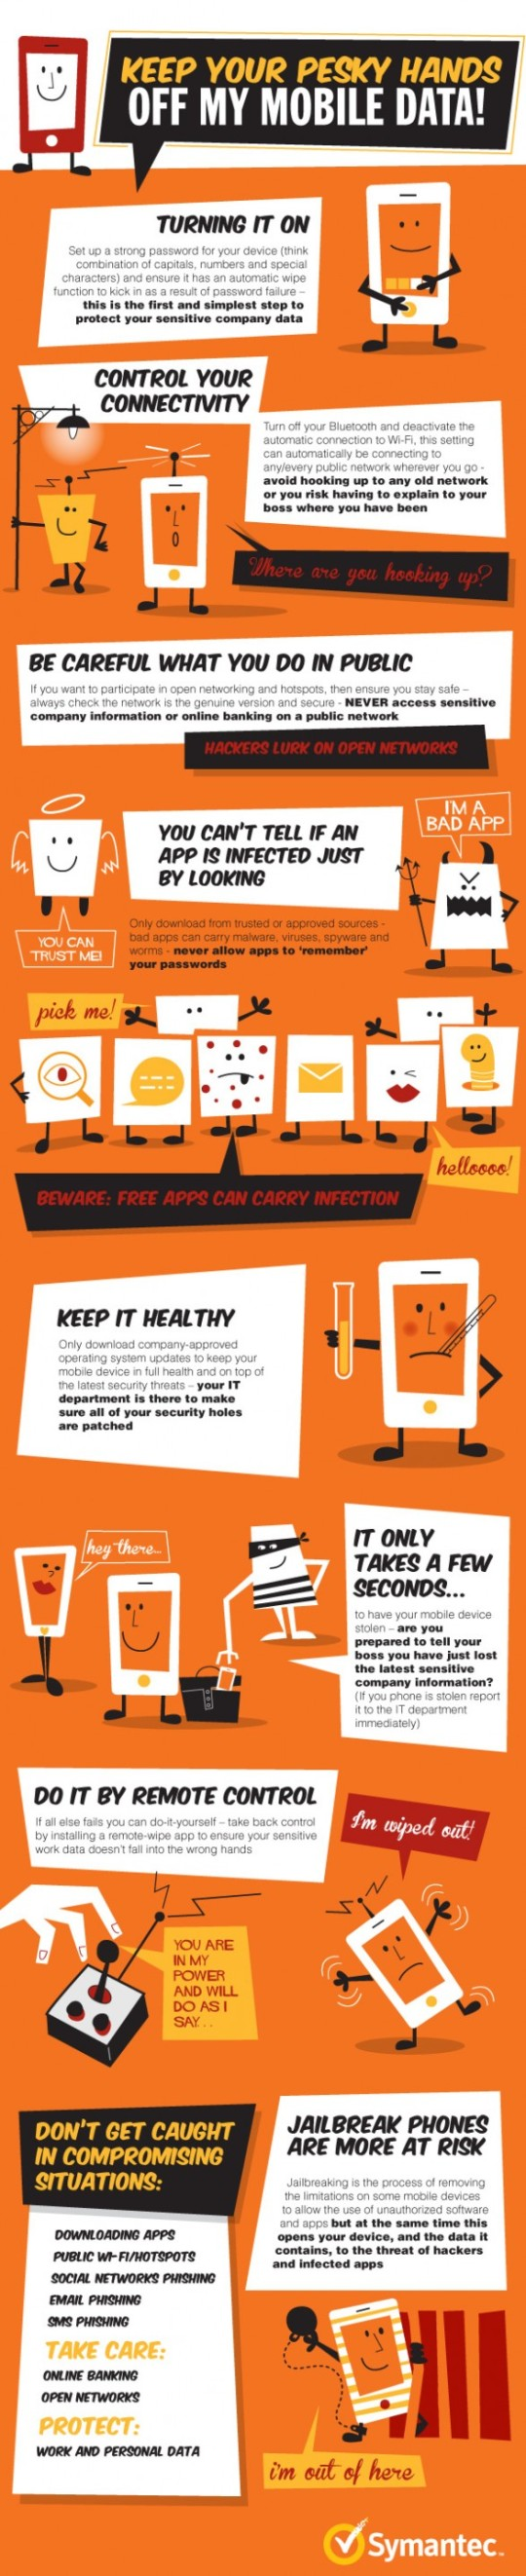 how-to-keep-your-smartphone-safe--secure-infographic_516975c30fbfb_w587